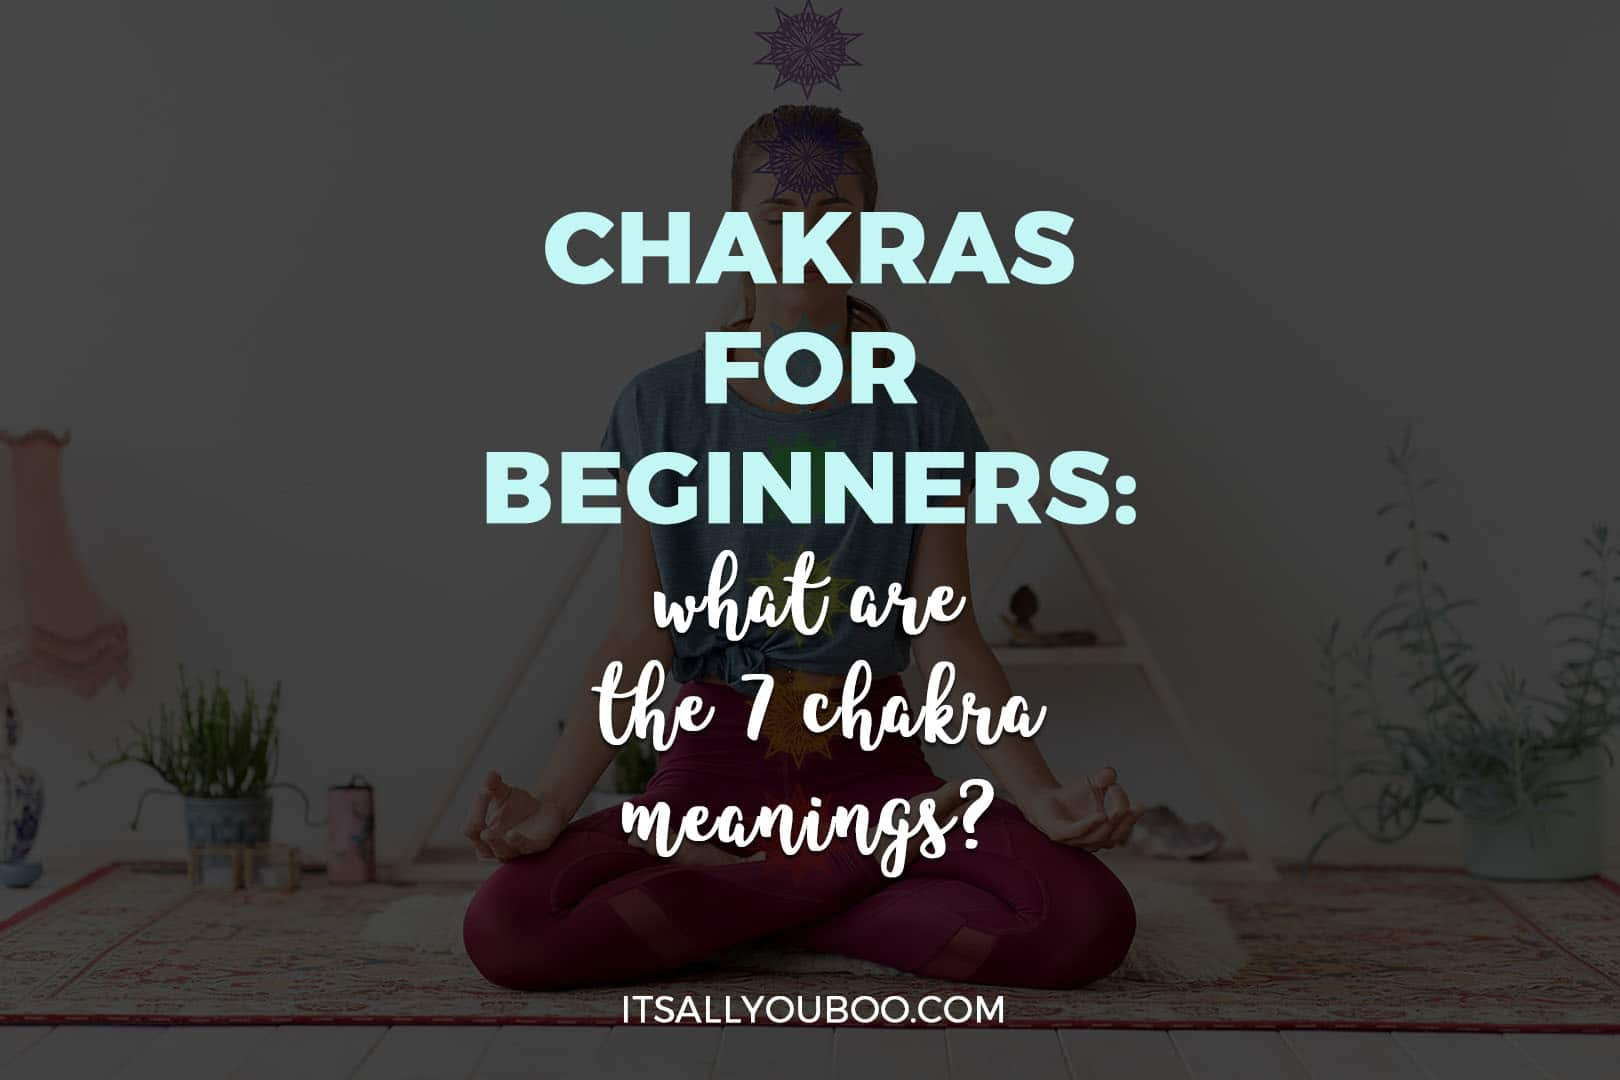 Chakras For Beginners: What are the 7 Chakra Meanings?